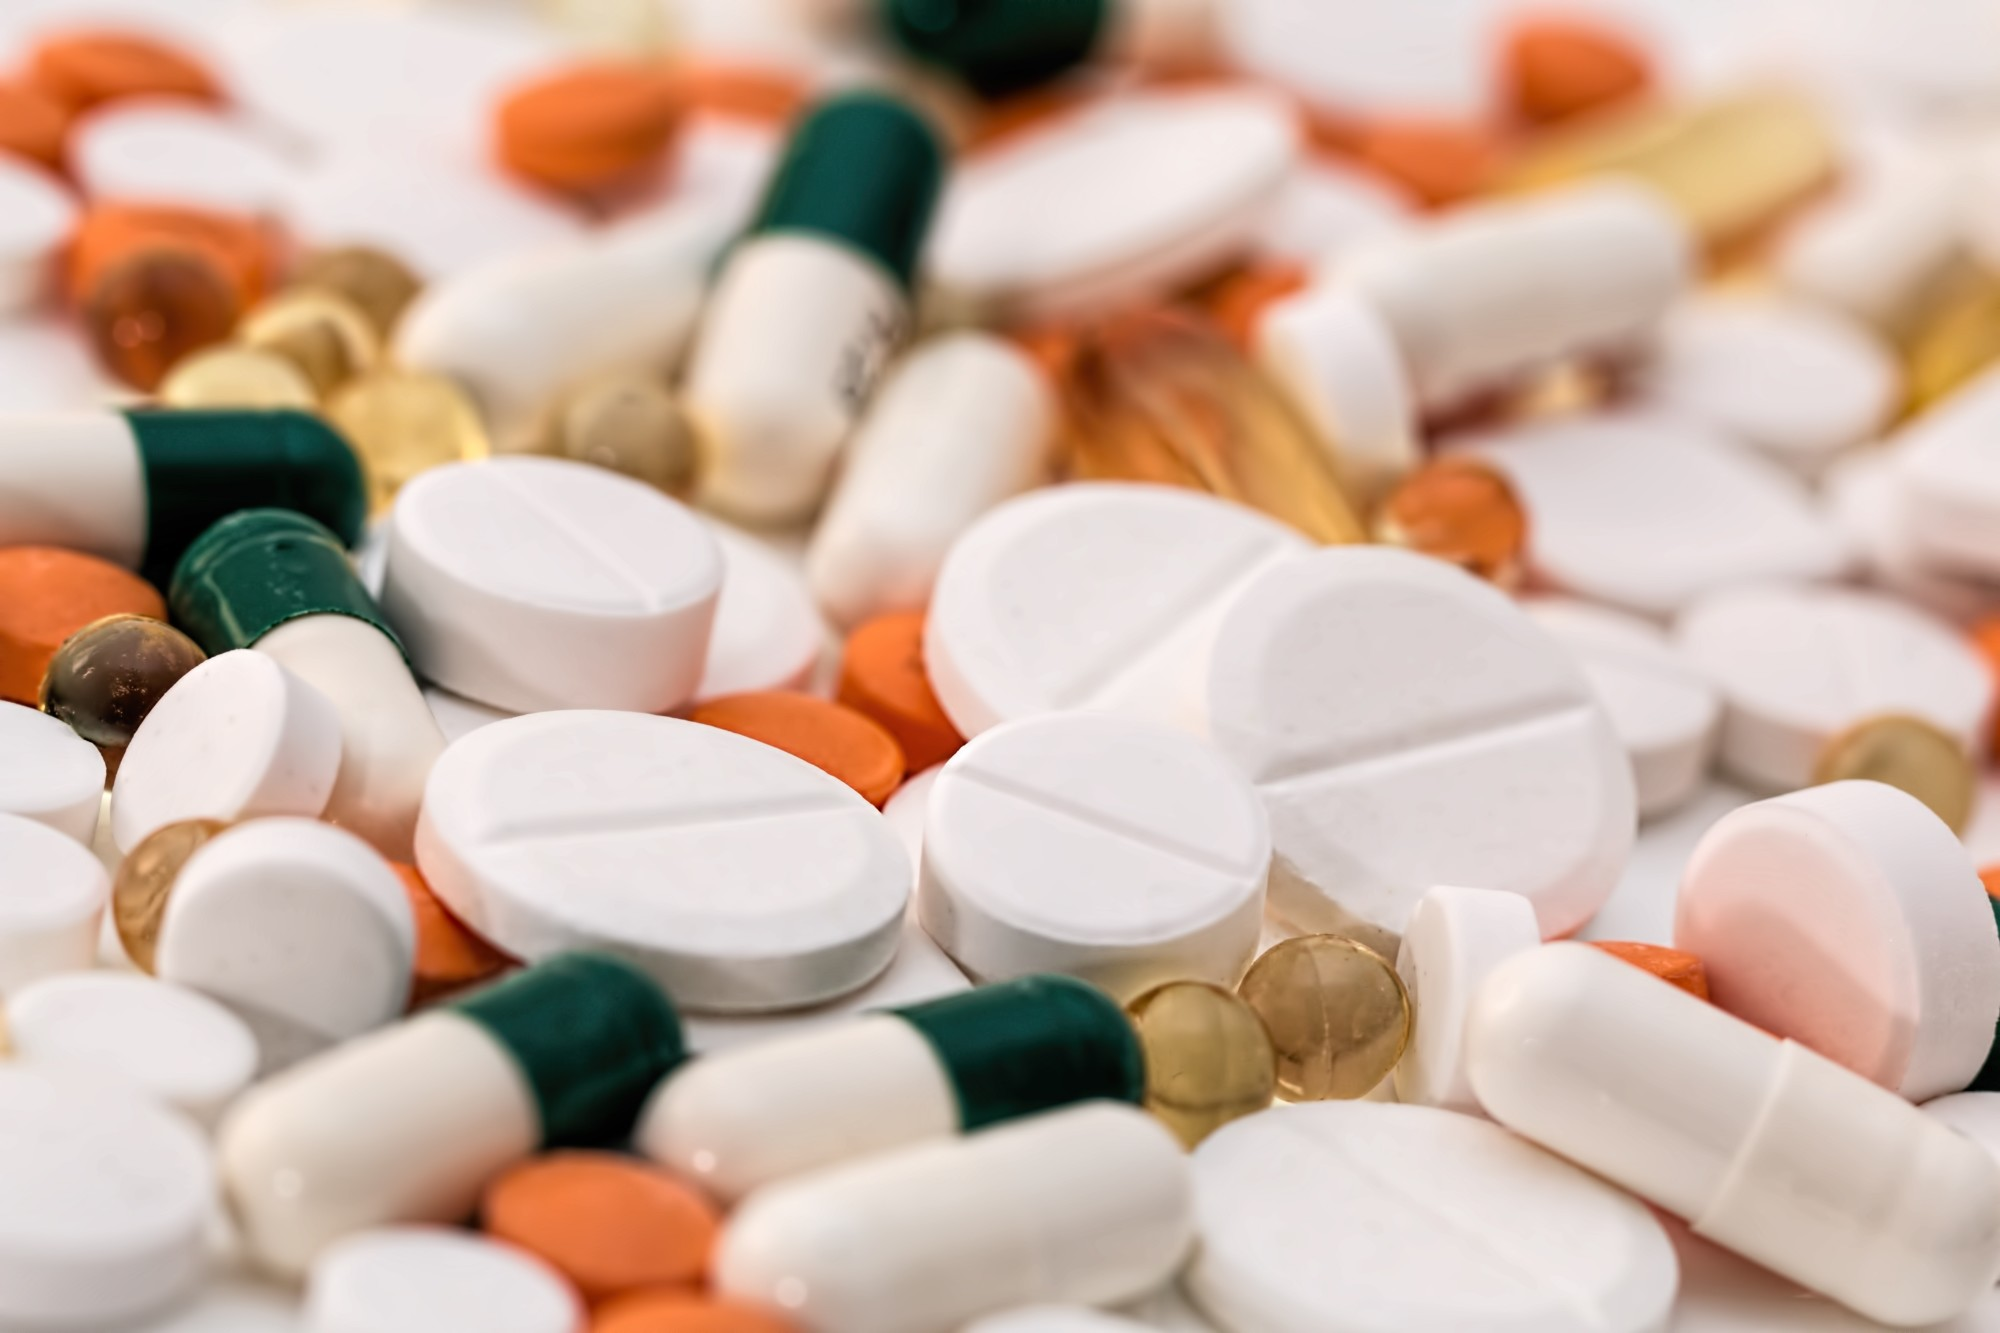 Many different types of brand-name vs. generic drugs